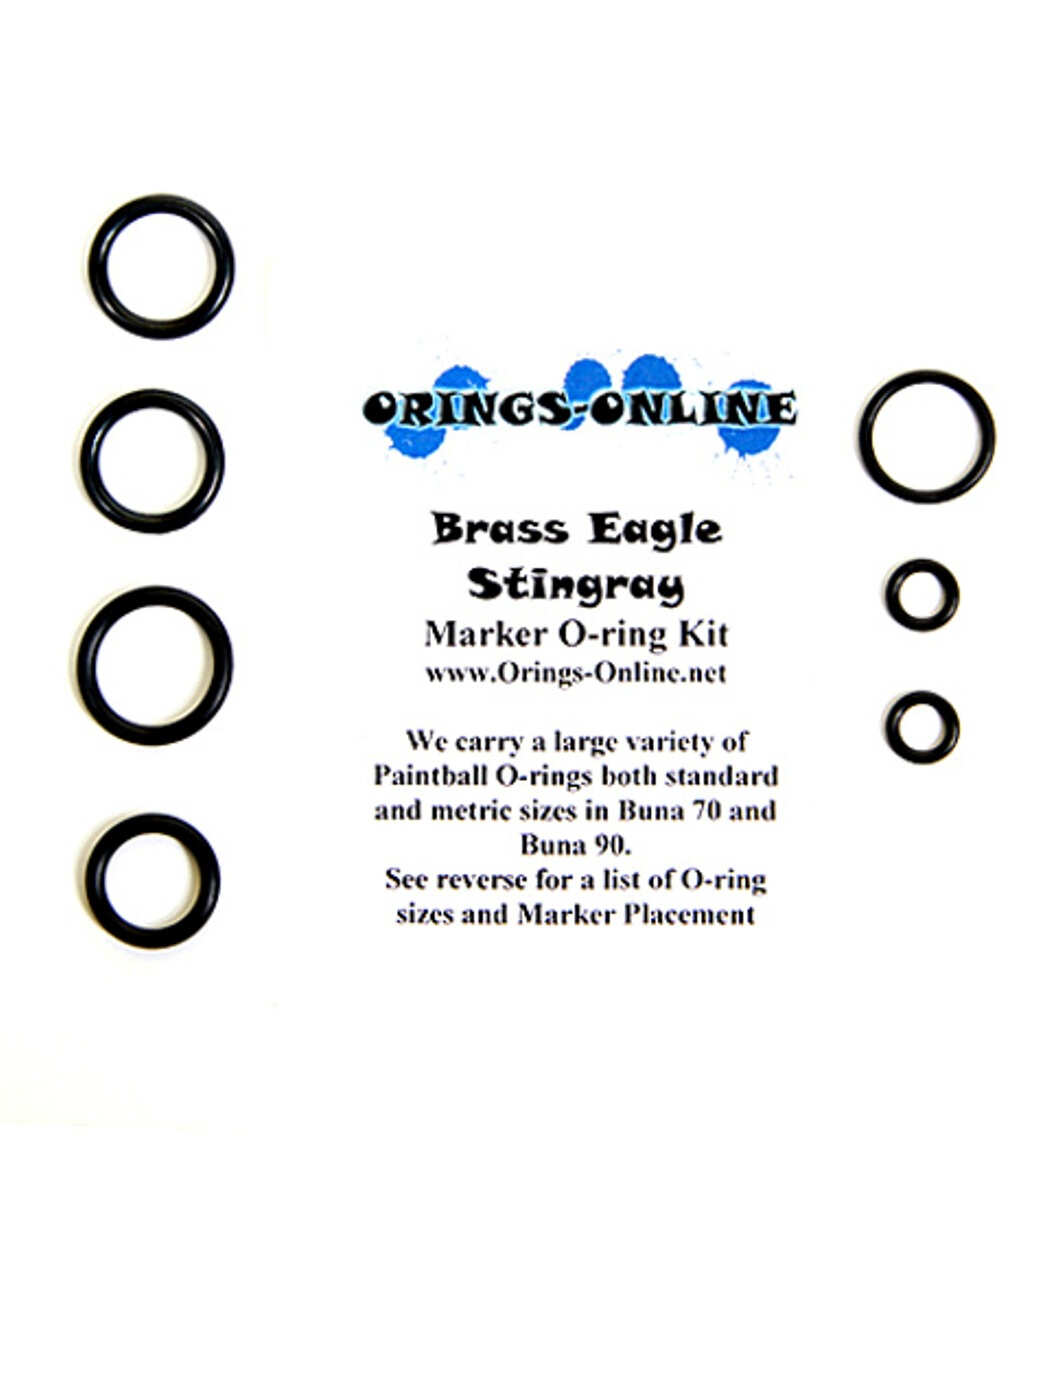 Brass Eagle - Stingray Marker O-ring Kit